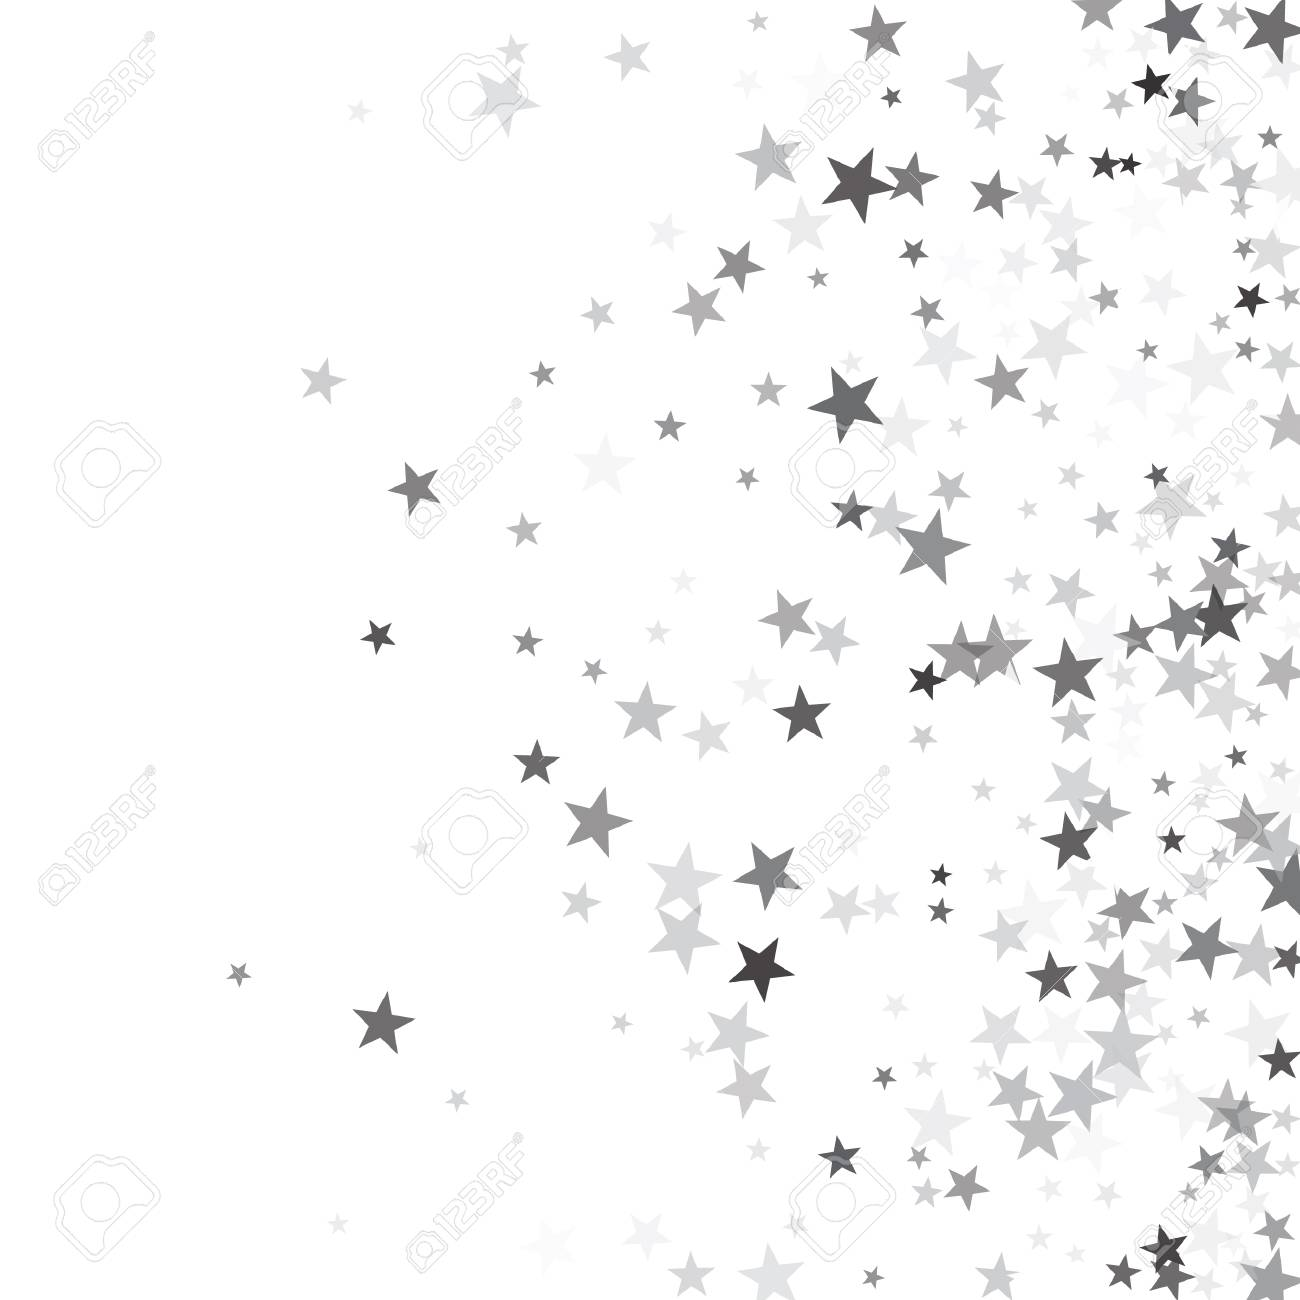 Silver sparkles clipart free stock Luxurious silver glitter falling stars vector template for ... free stock